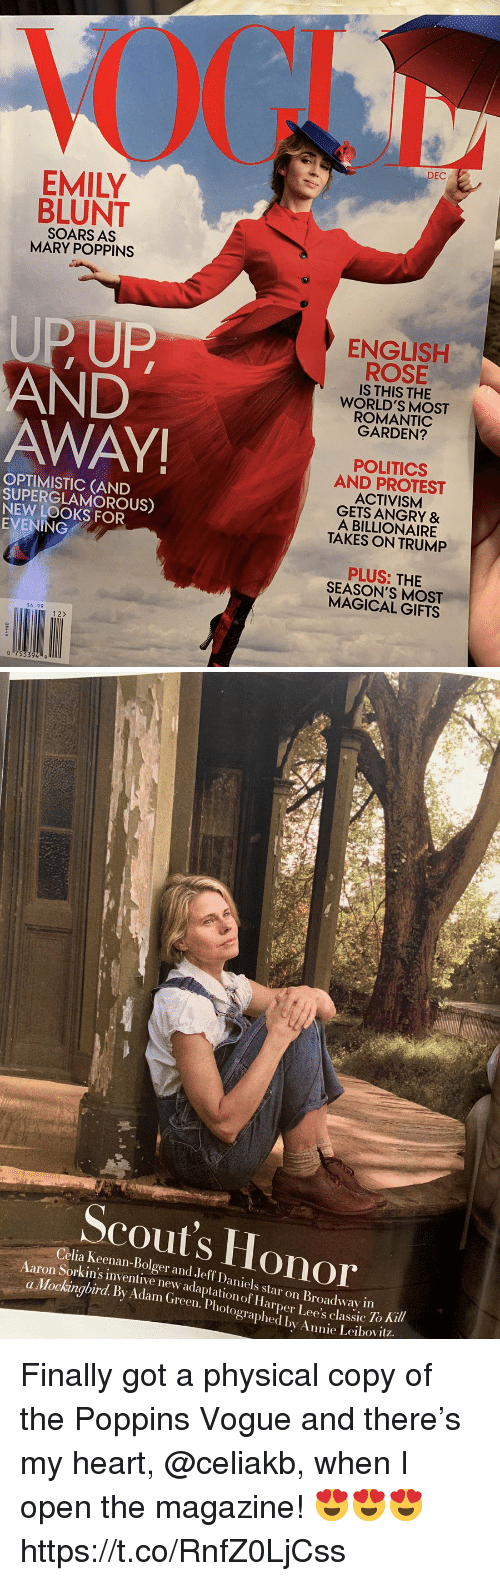 broadway: DEC  EMILY  BLUNT  SOARS AS  MARY POPPINS  UPUP  AND  AWAY  ENGLISH  ROSE  IS THIS THE  WORLD'S MOST  ROMANTIC  GARDEN?  OPTIMISTIC (AND  SUPERGLAMOROUS)  NEW LOOKS FOR  EVENING  POLITICS  AND PROTEST  ACTIVISM  GETS ANGRY &  A BILLIONAIRE  TAKES ON TRUMP  PLUS: THIE  SEASON'S MOST  MAGICAL GIFTS  $6.99  12>   Scout's Honor  Celia Keenan-Bolger and Jeff Daniels star on Broadway in  Sorkin's inventive new adaptation of Harper Lee's classic 10  To Ki  a Mockingbird. By Adam (Green. Photographed by Annie Leibovit? Finally got a physical copy of the Poppins Vogue and there's my heart, @celiakb, when I open the magazine! 😍😍😍 https://t.co/RnfZ0LjCss